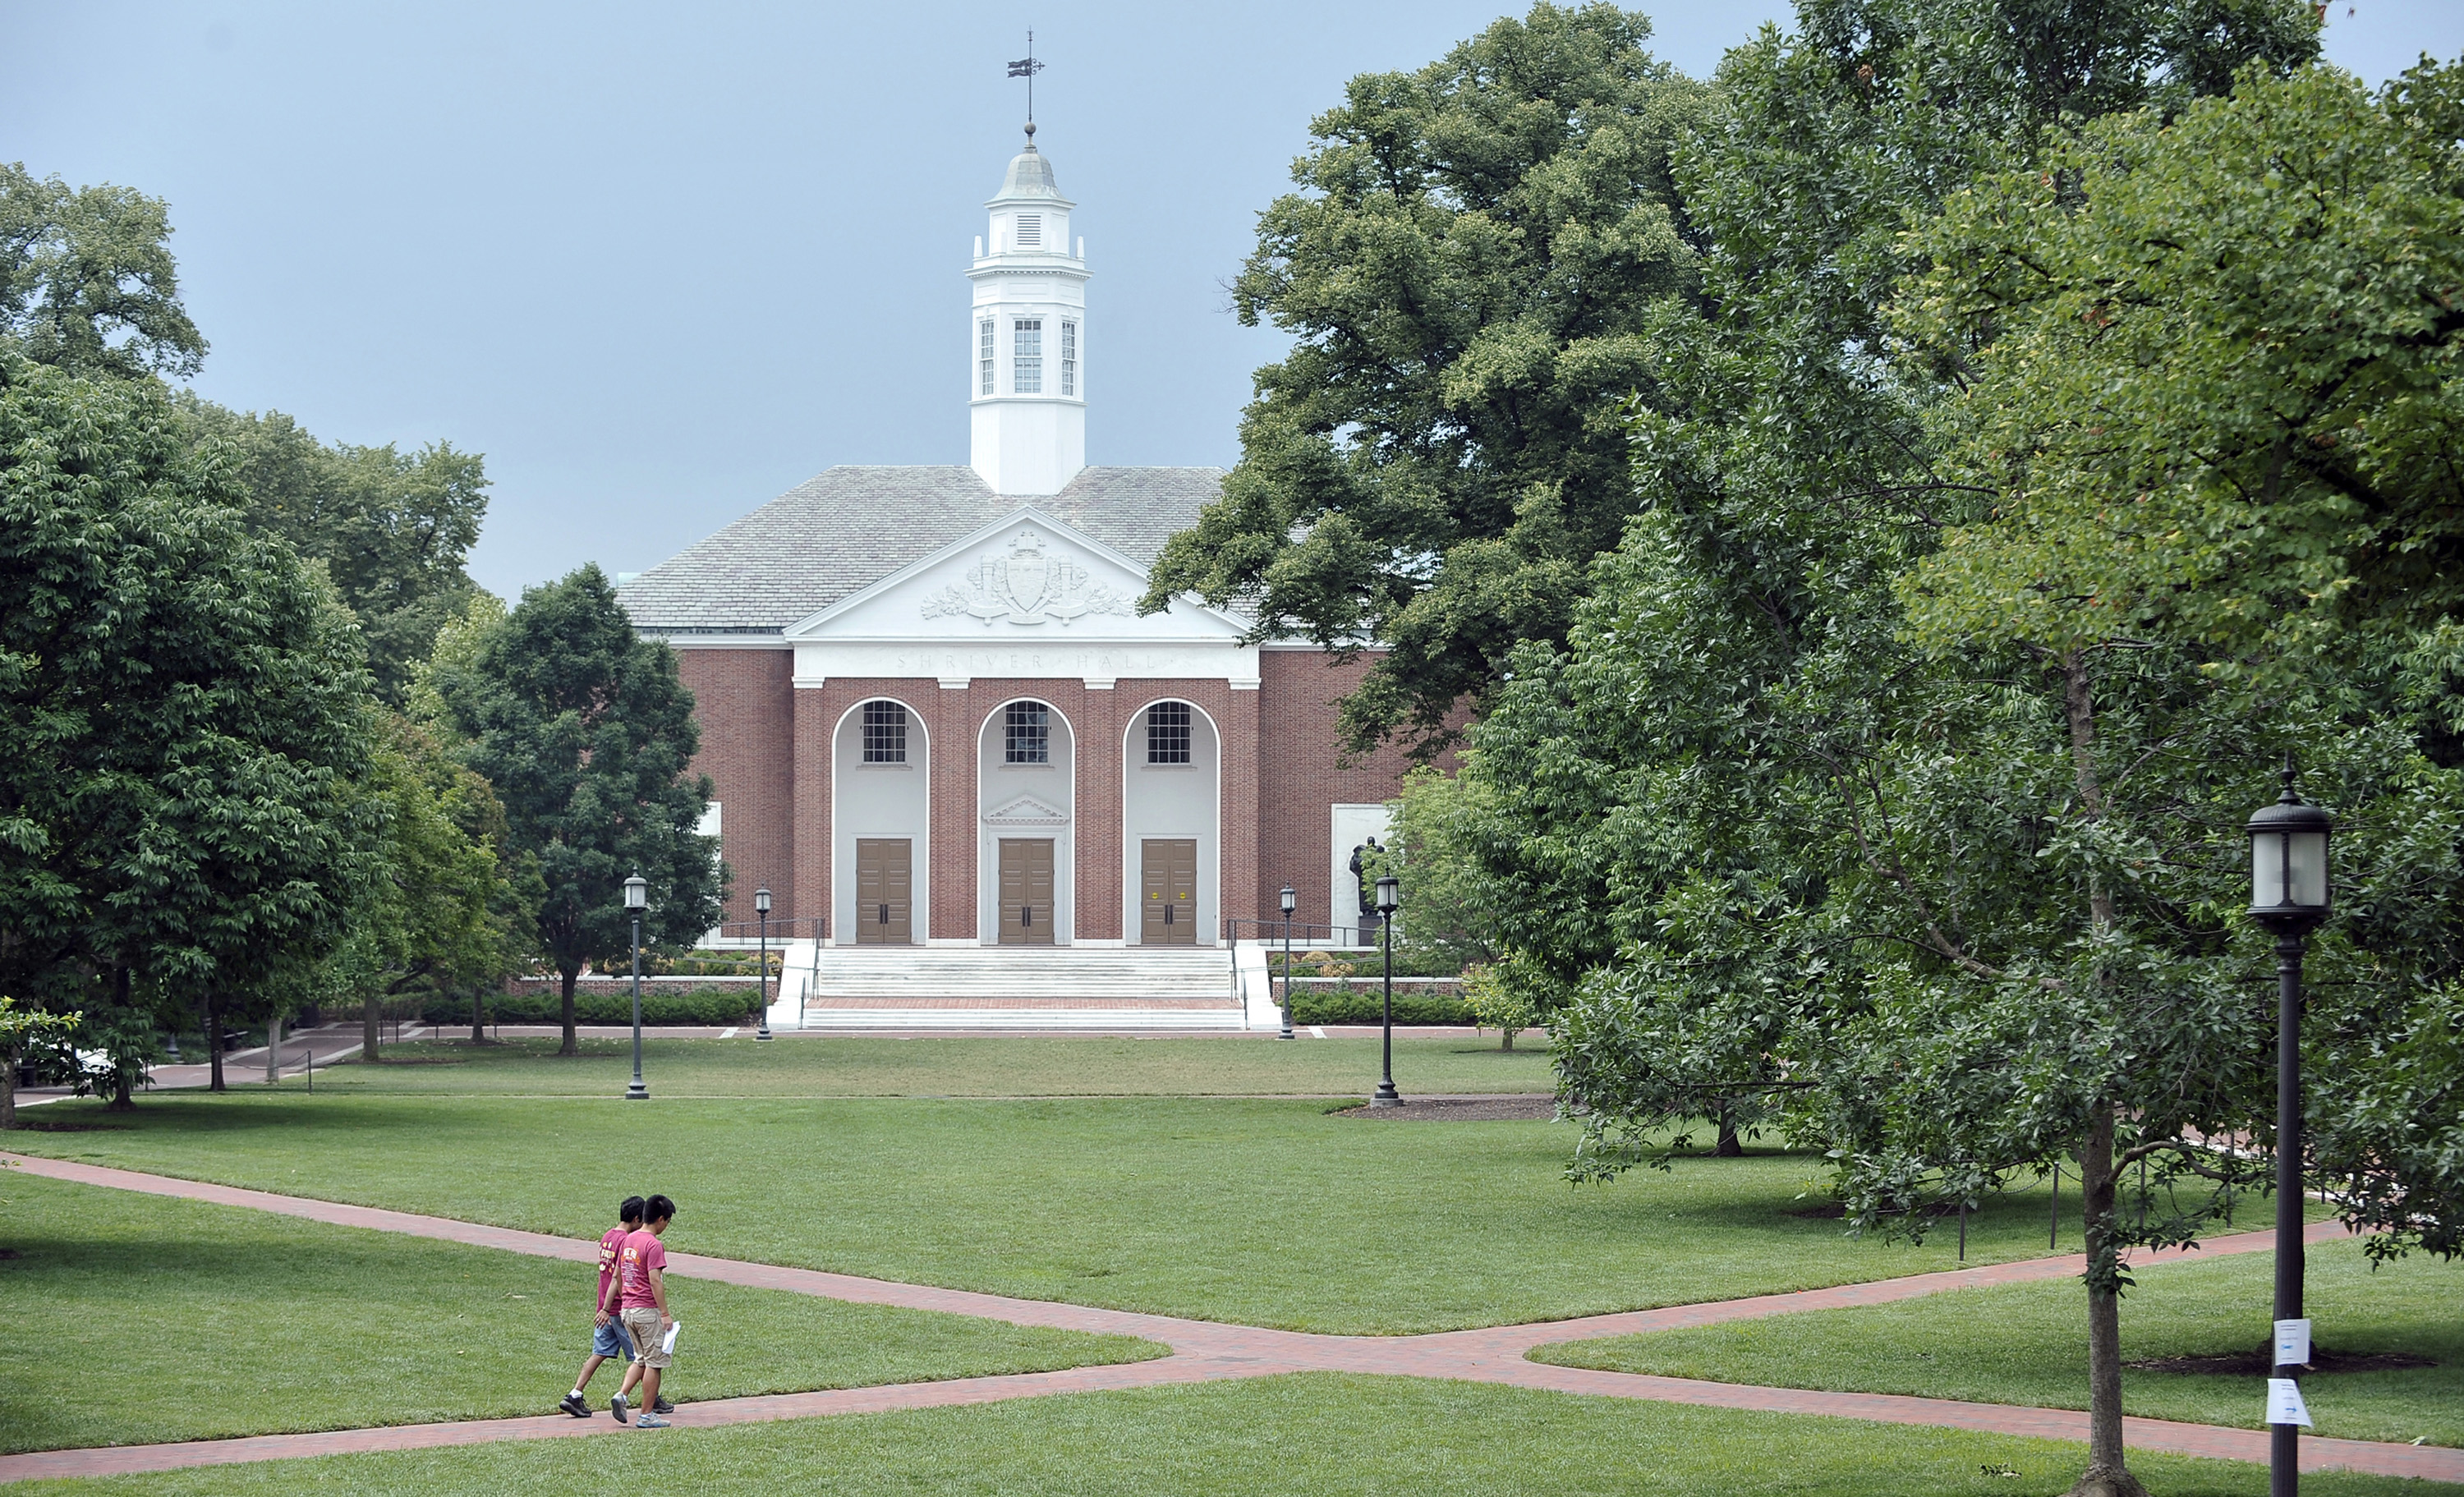 The Johns Hopkins University campus in Baltimore, Maryland.